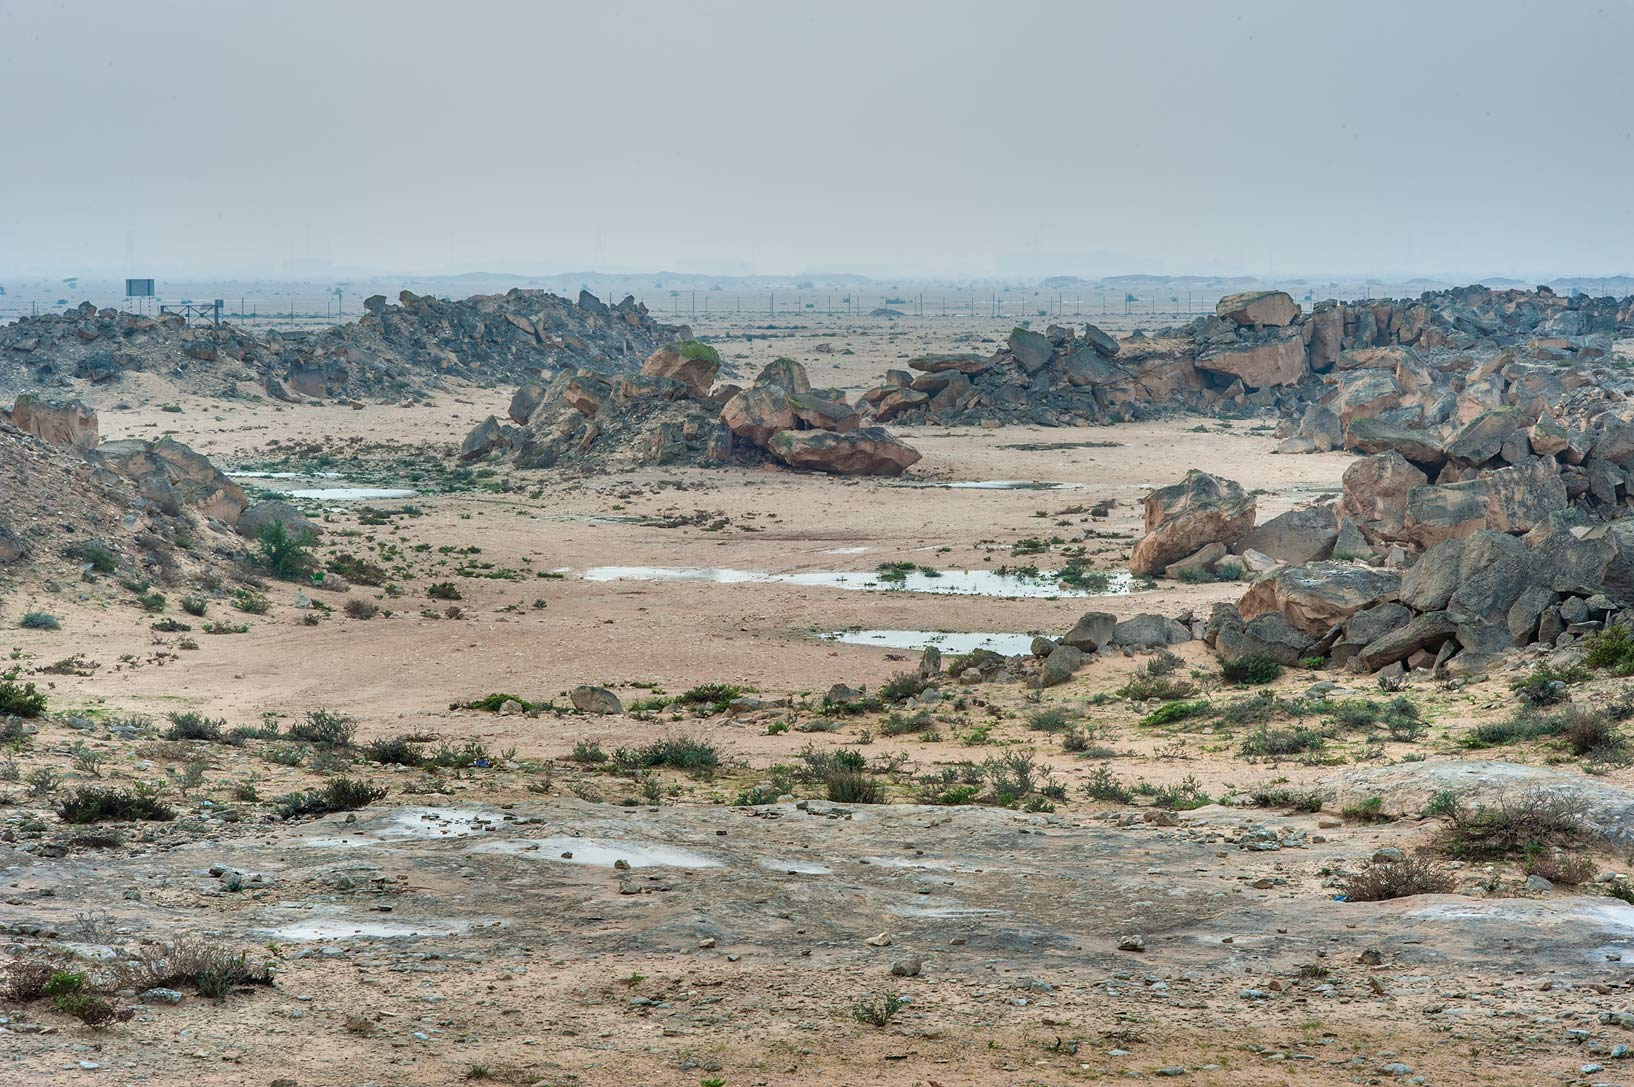 Stone quarry from a rocky ridge in Jabal Al Jassasiya site, on north-eastern coast. Qatar